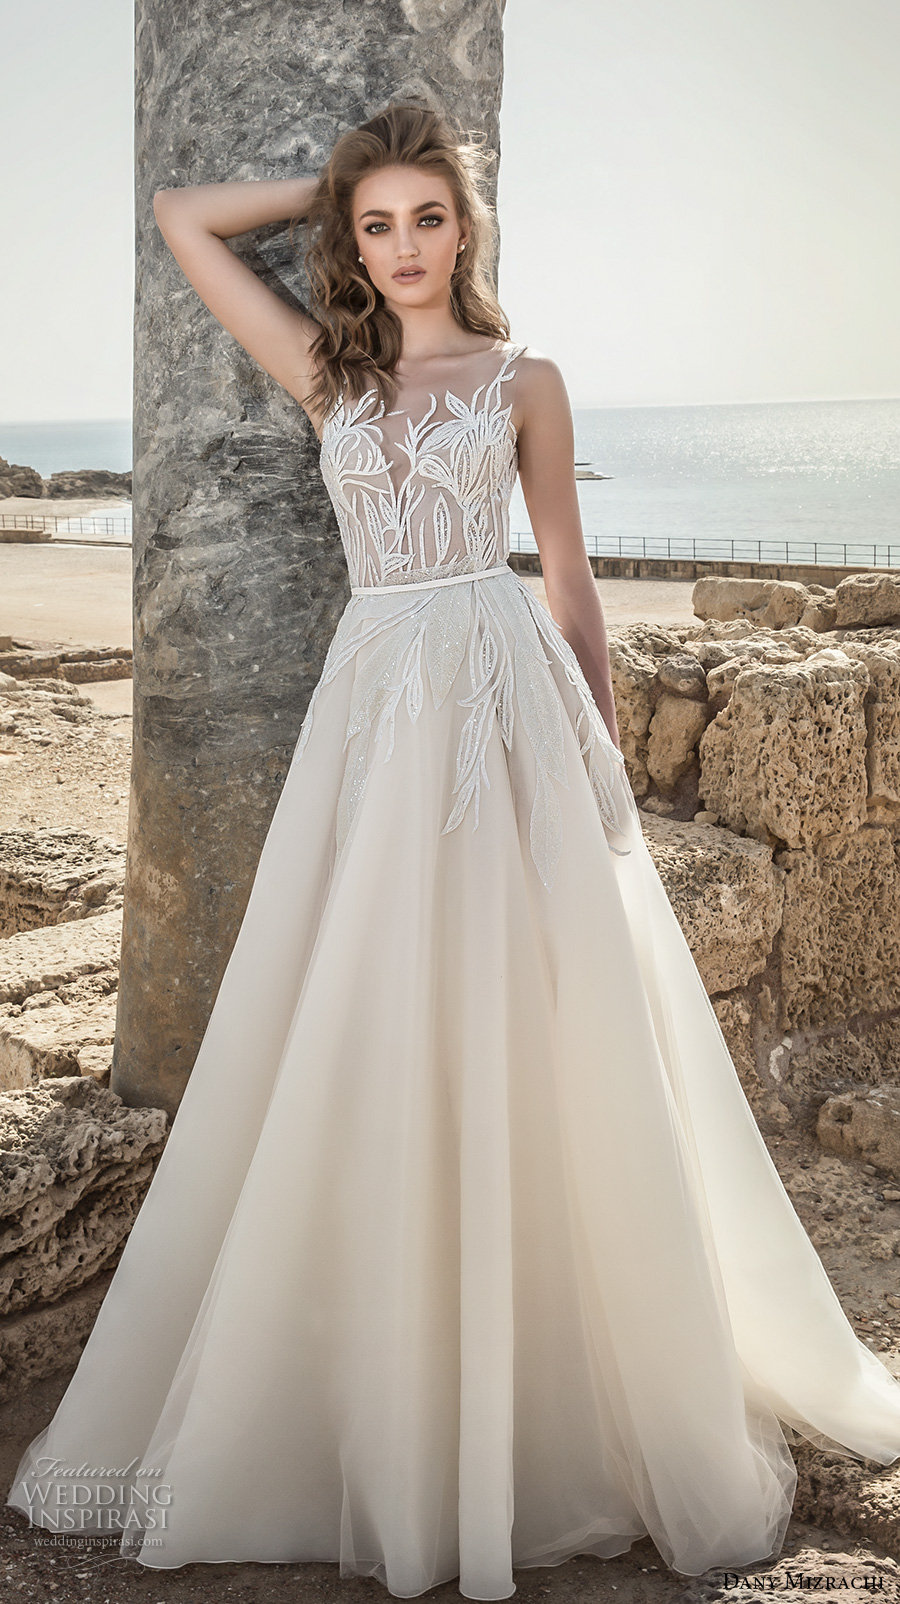 dany mizrachi 2018 bridal embroidered strap sleeveless deep plunging sweetheart neckline heavily embellished bodice romantic a  line wedding dress open scoop back (10) mv